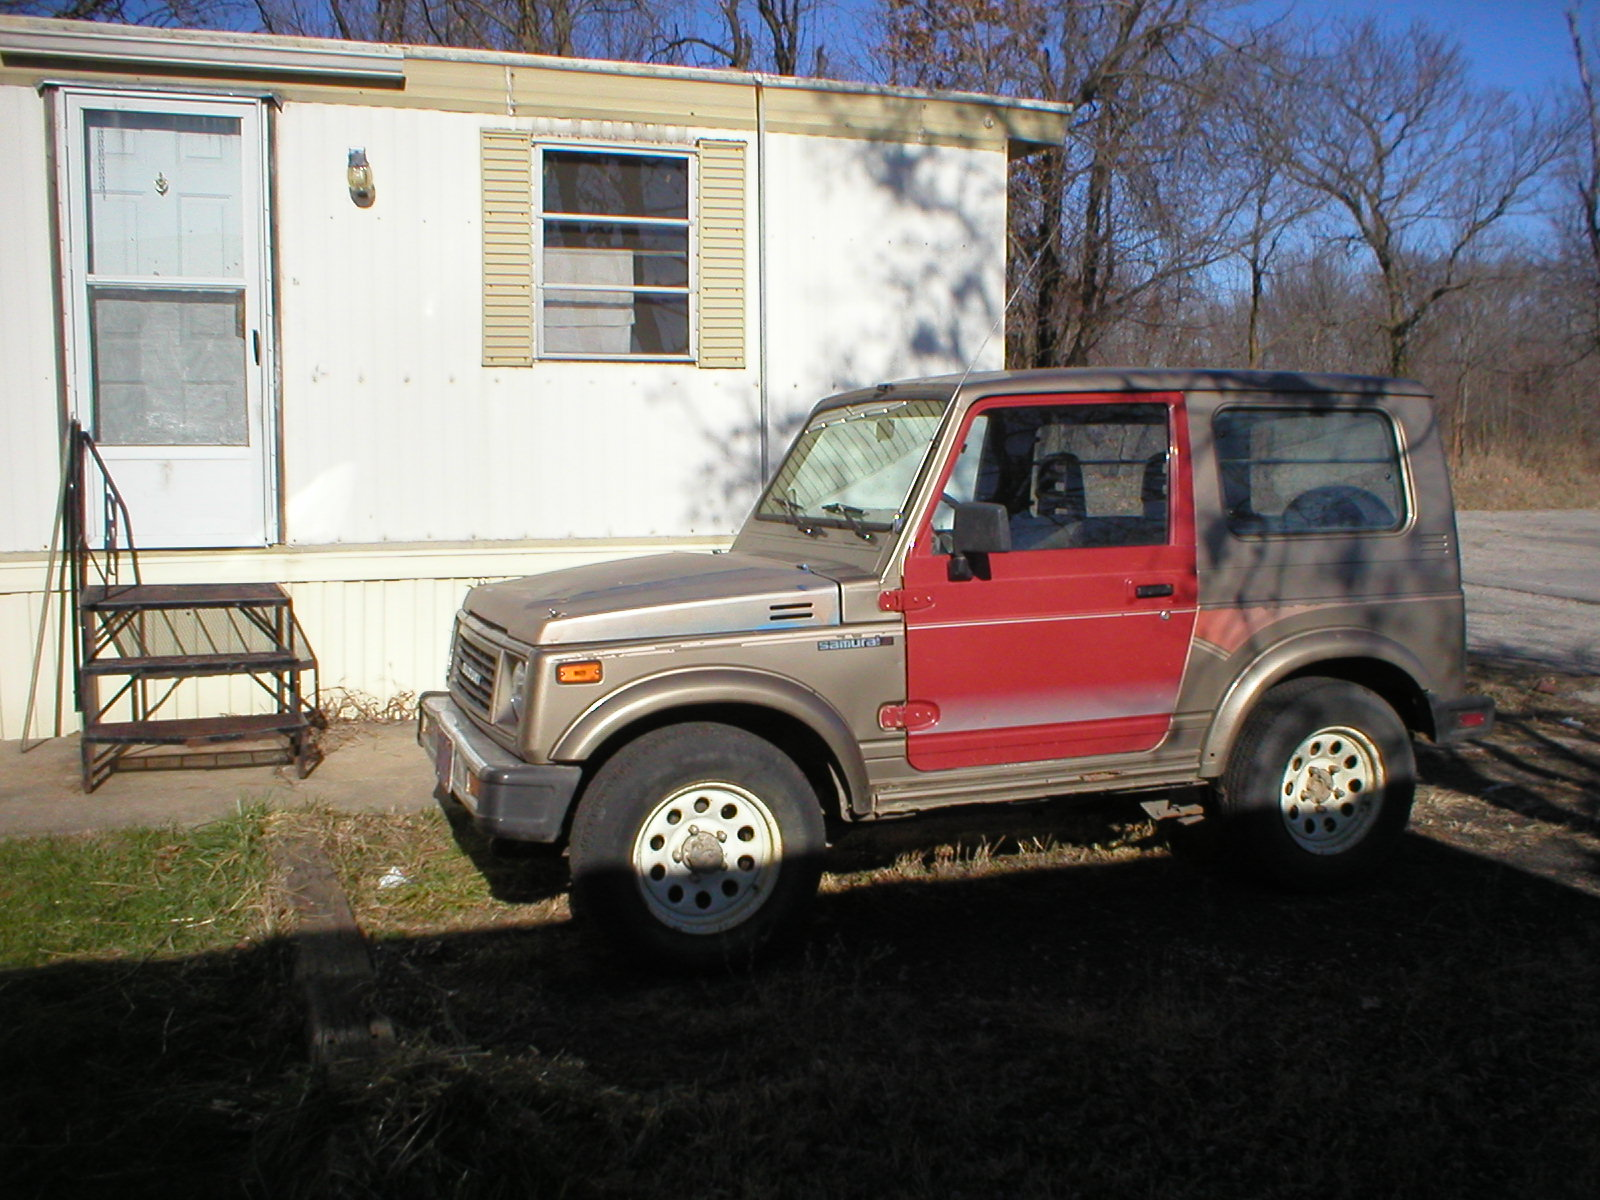 hight resolution of 1995 geo tracker i drove this when i first started college along with